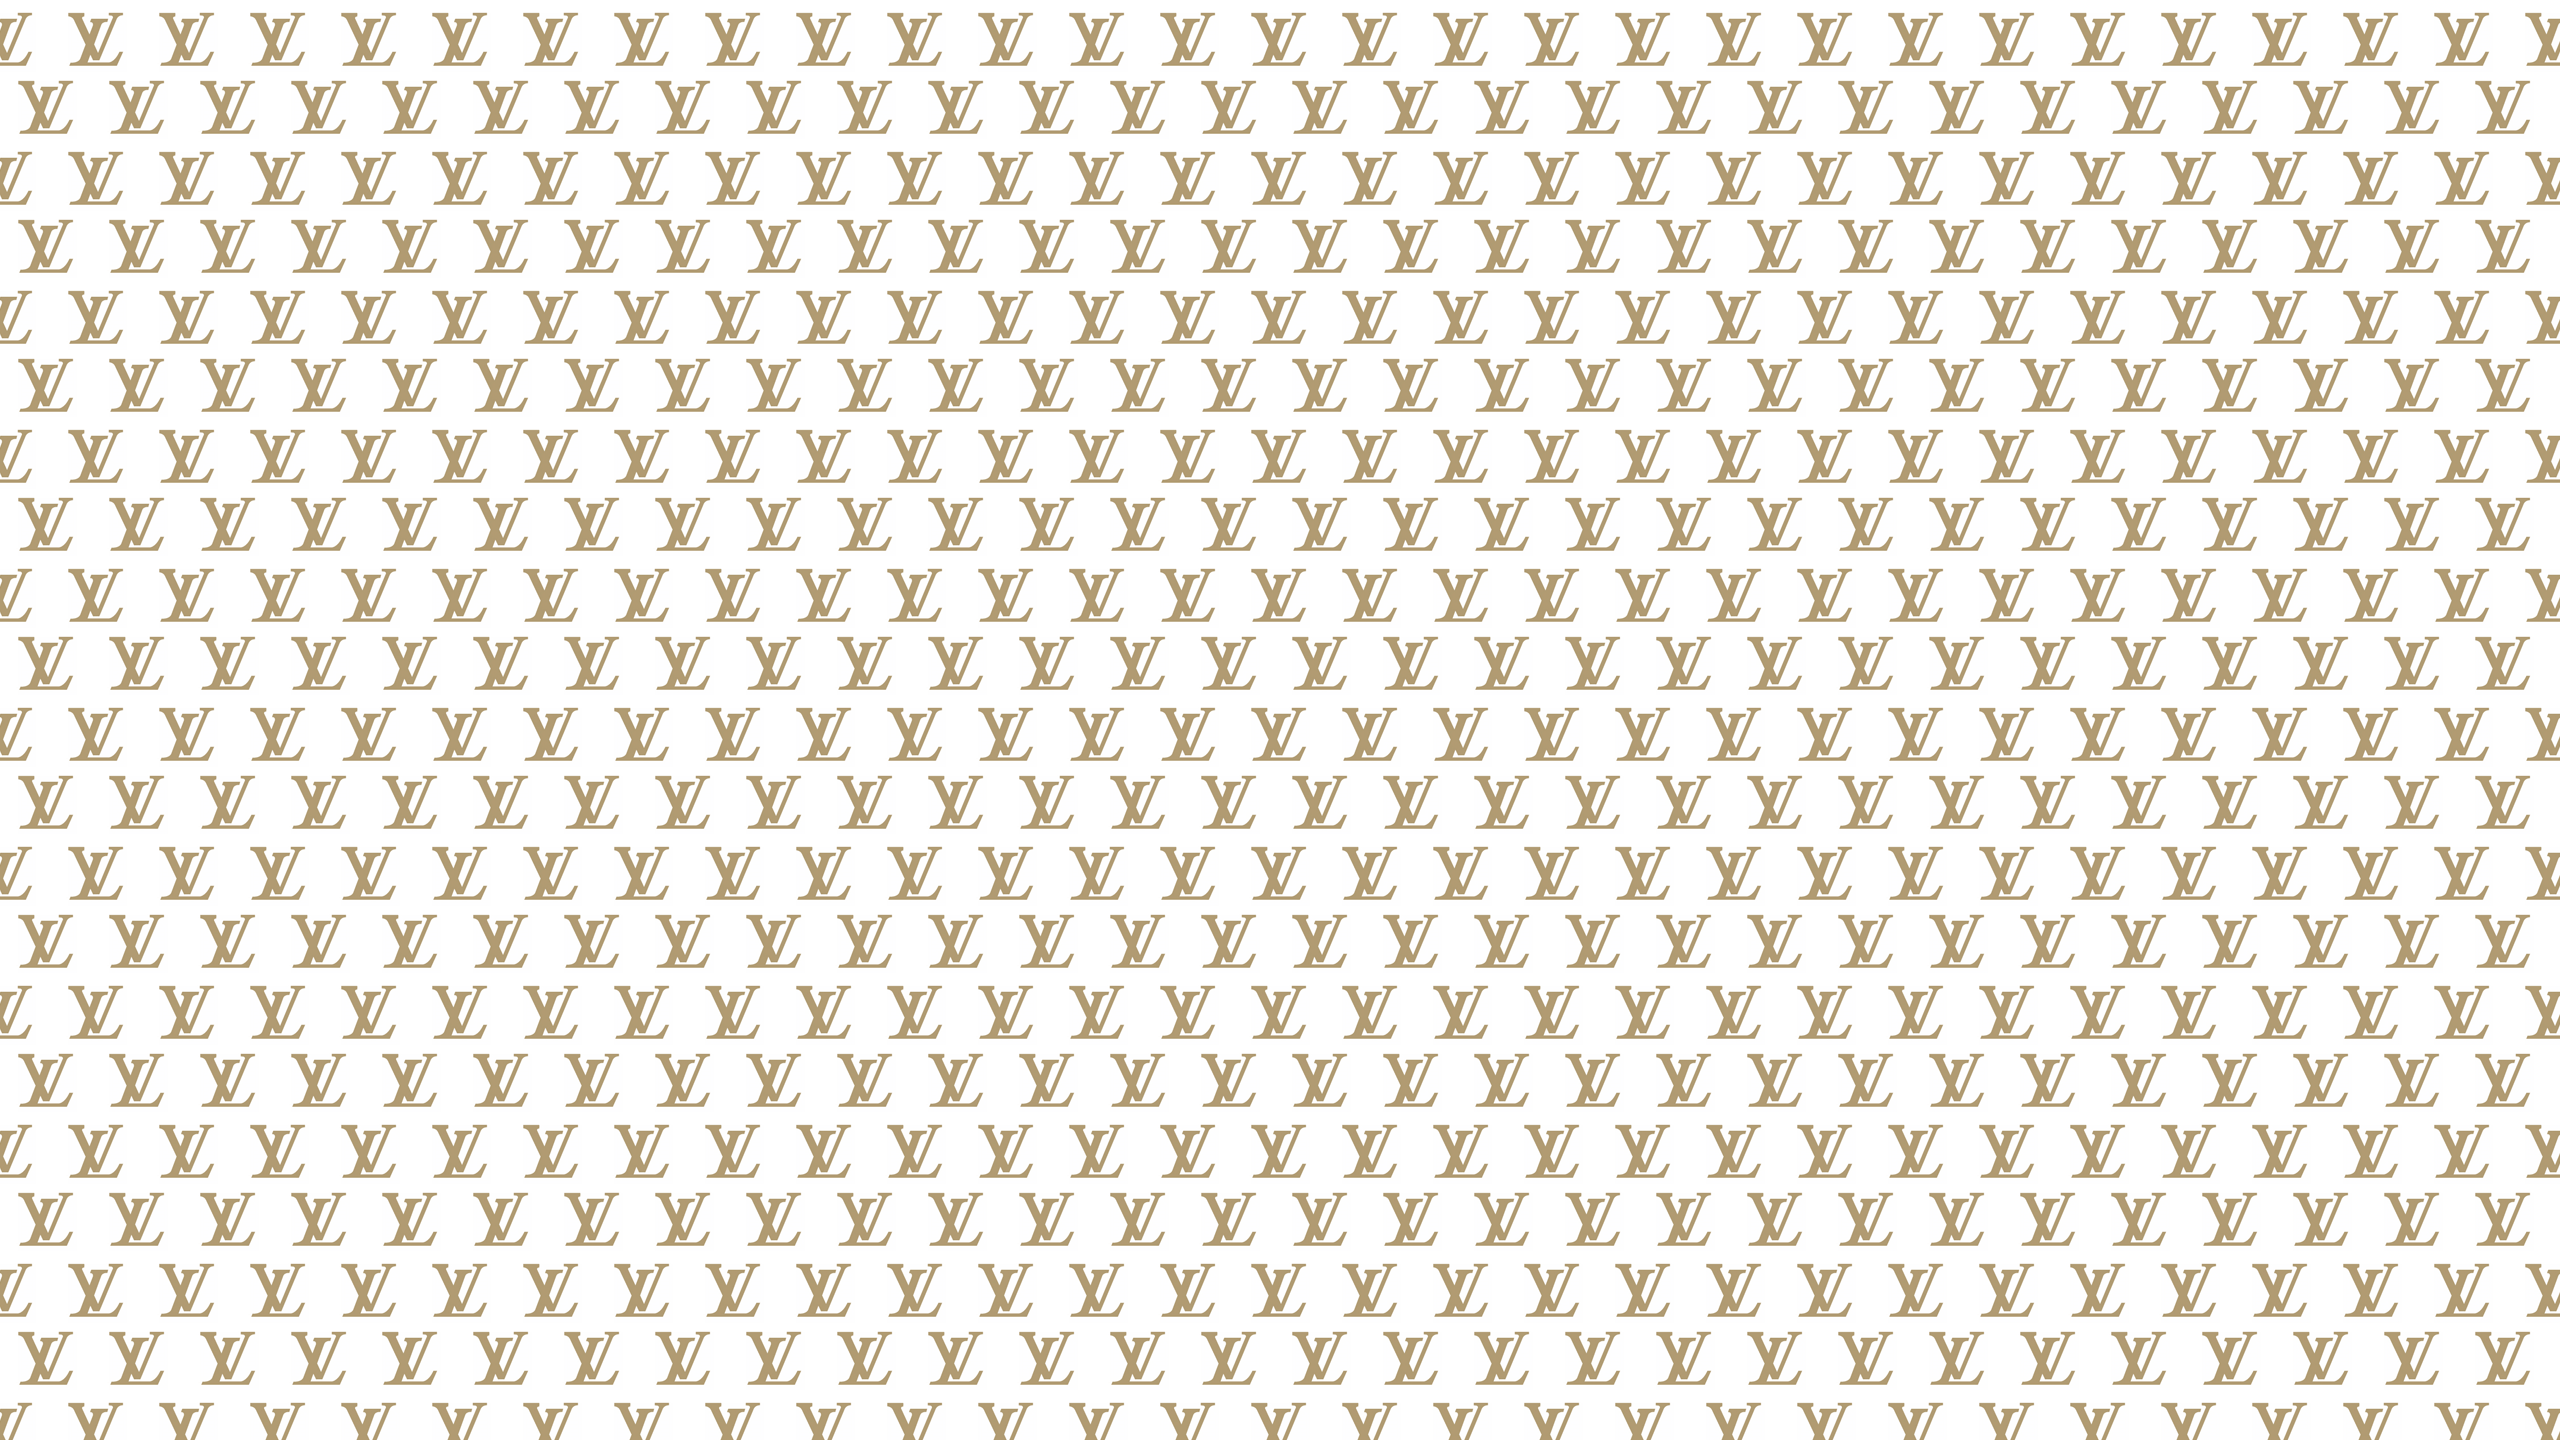 Louis Vuitton Wallpaper Gold Louis Vuitton Desktop